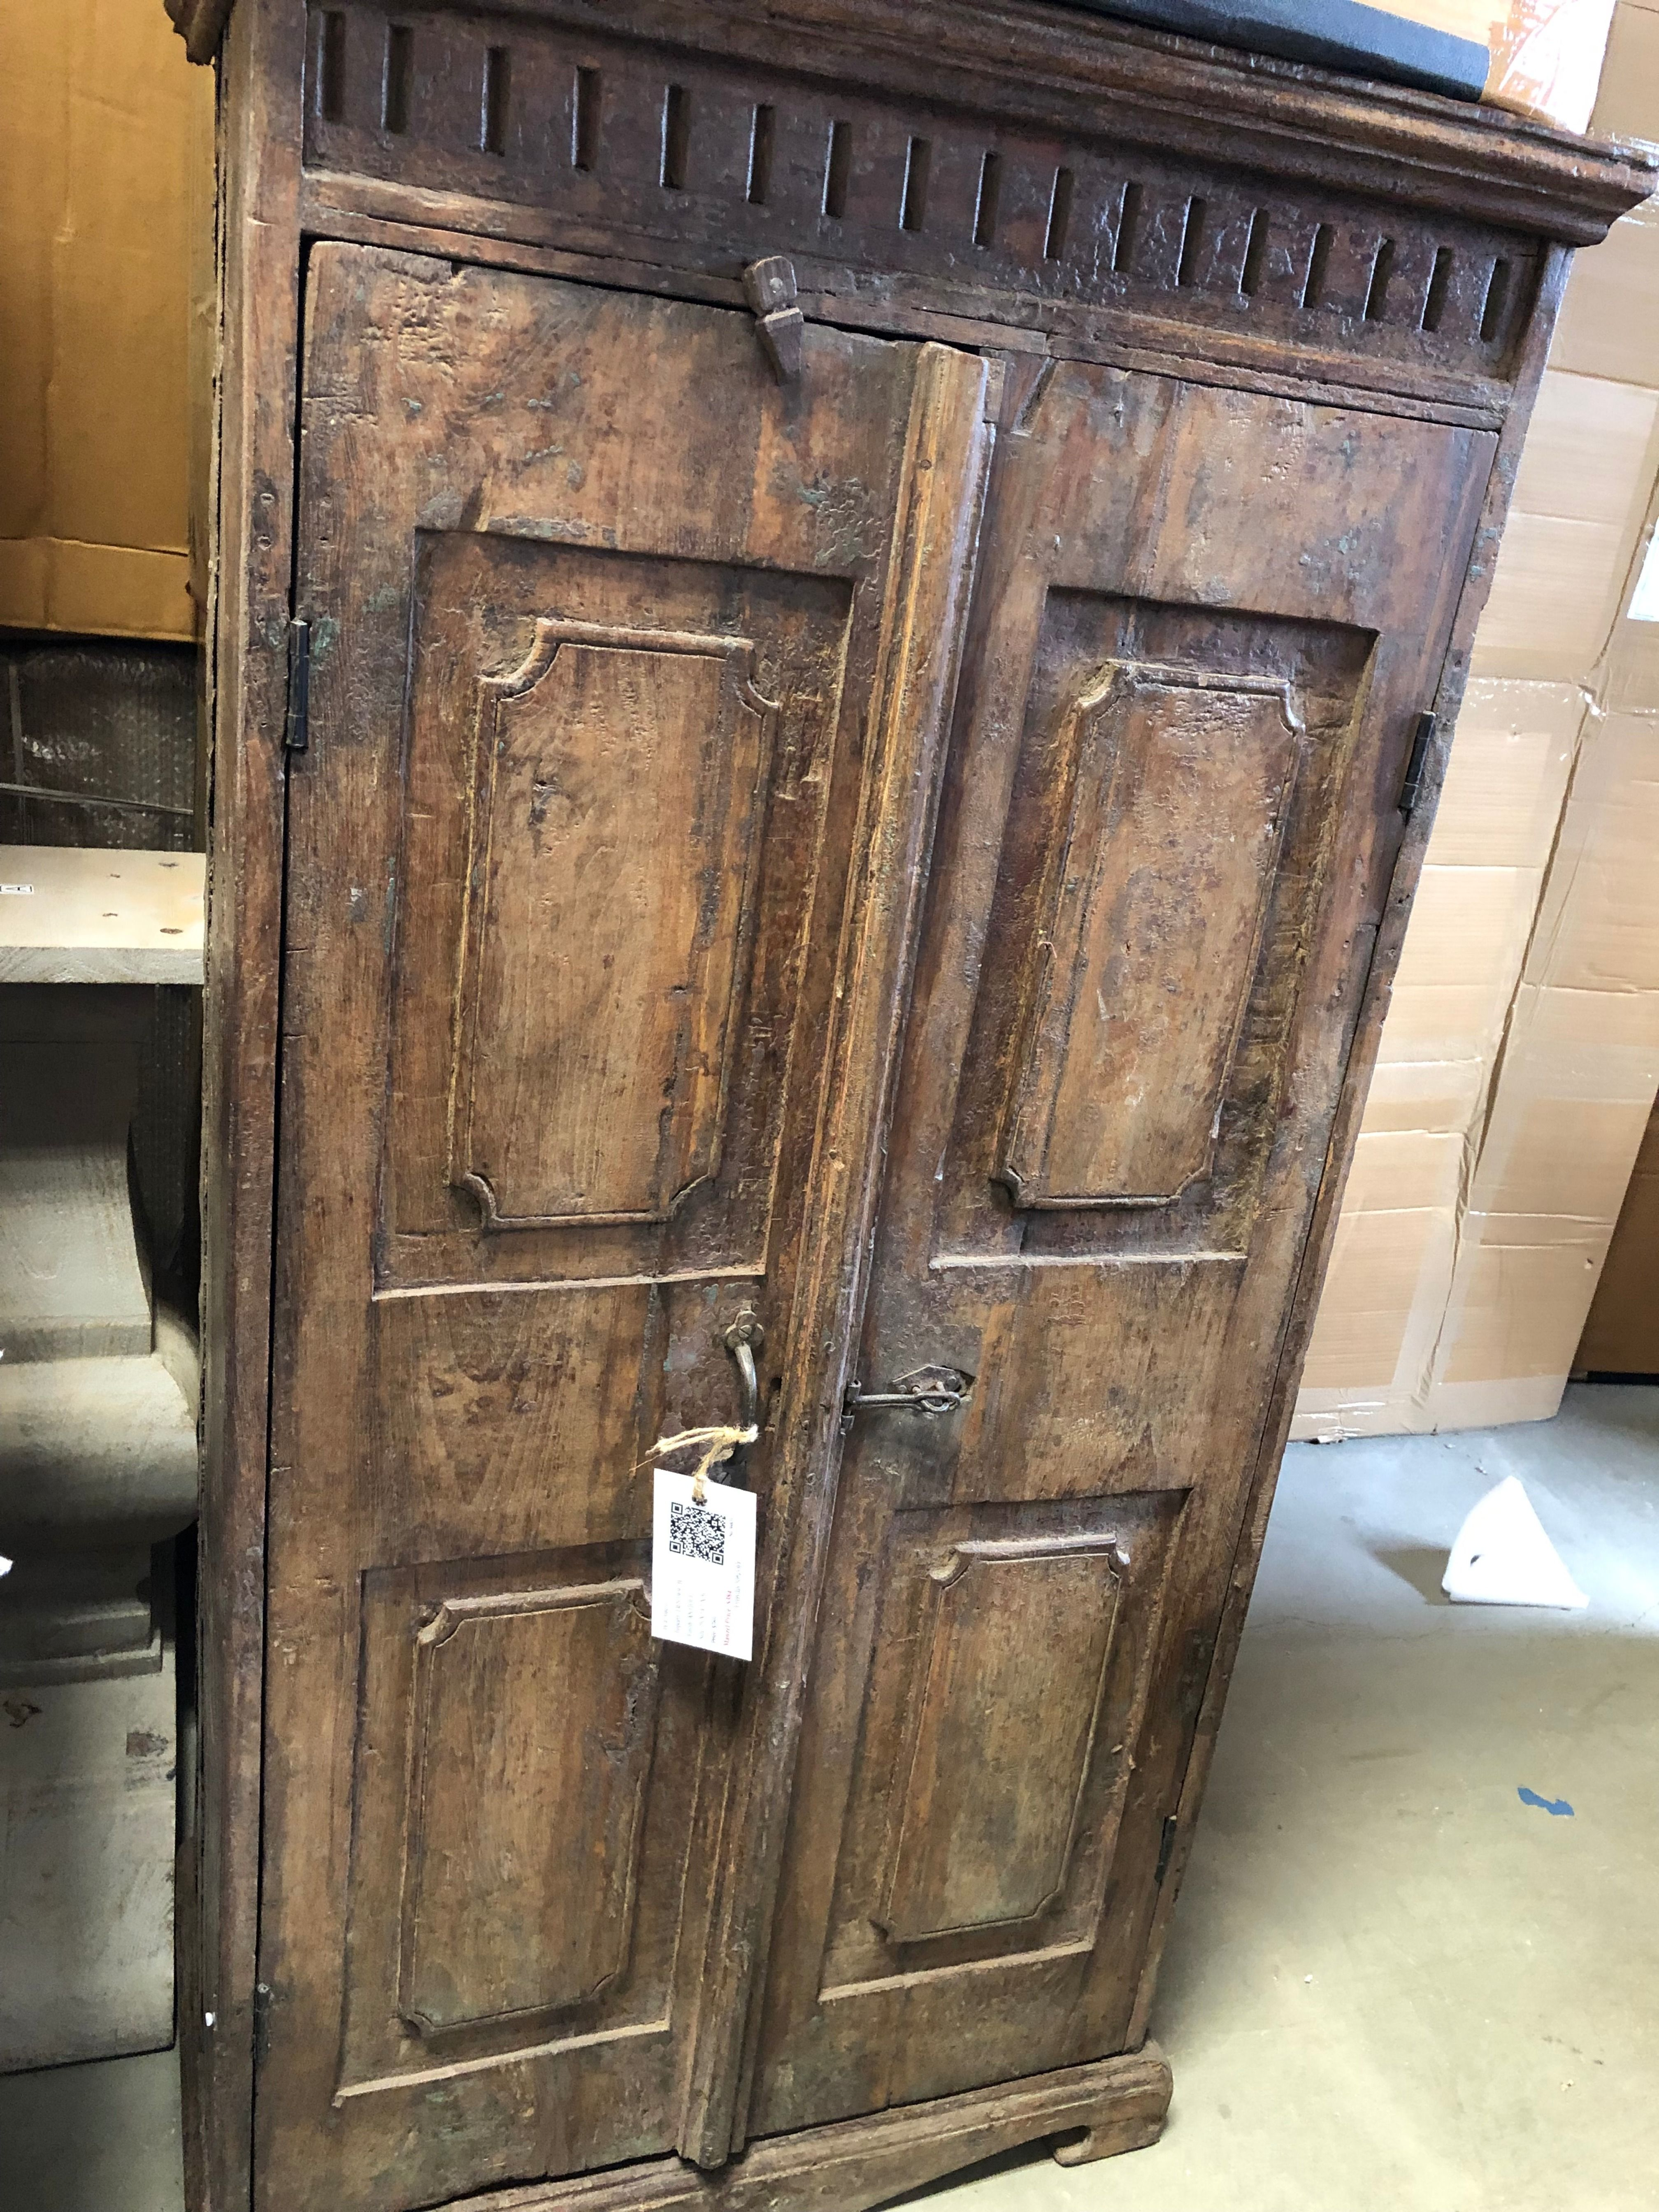 This reclaimed cabinet is fresh from India! Solid Wood doors